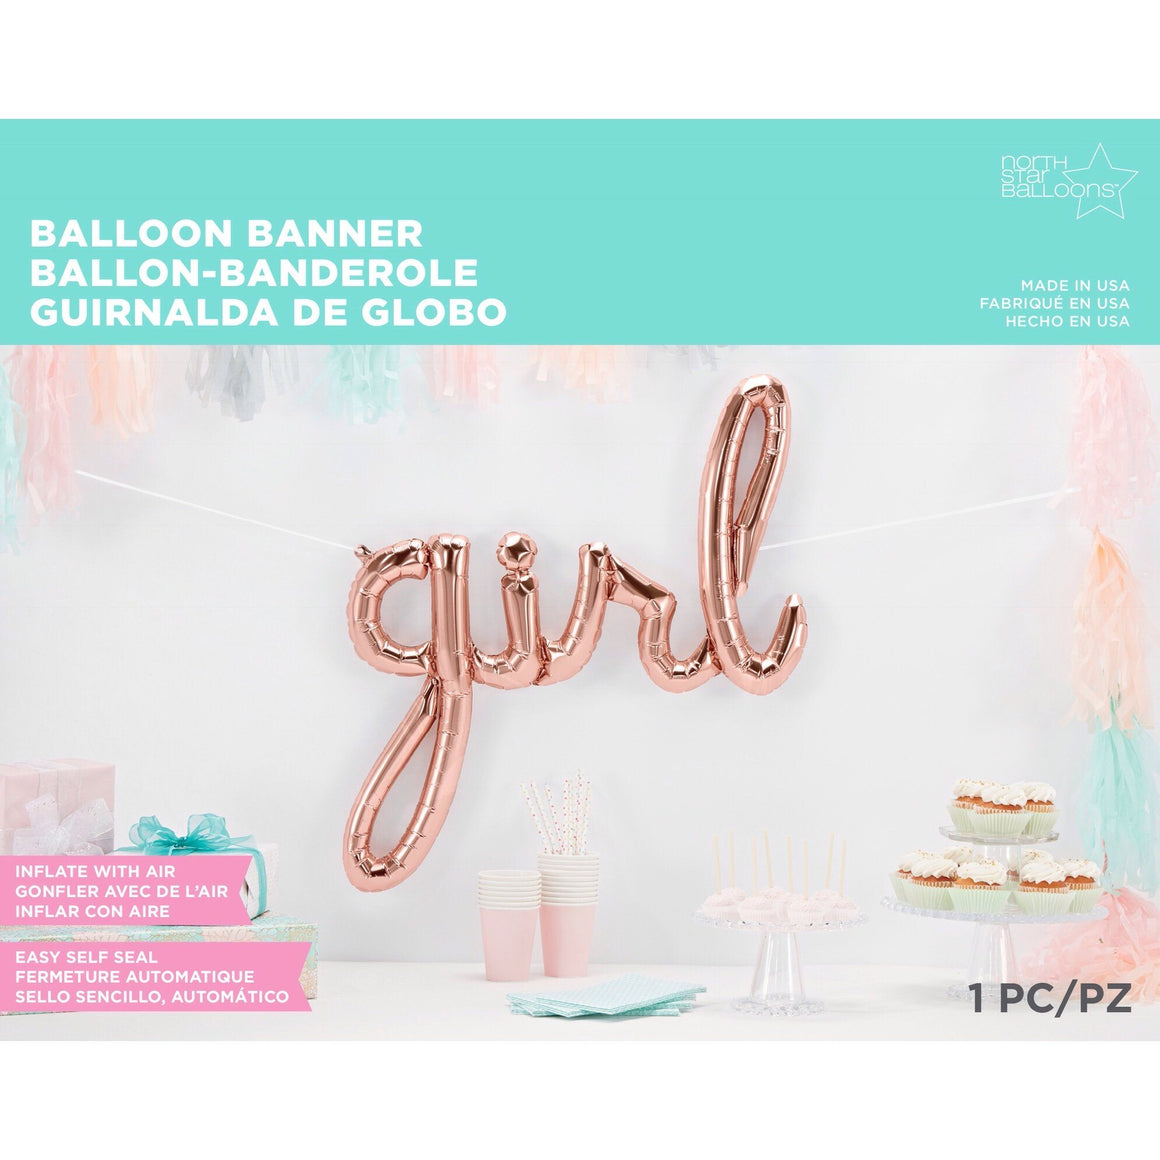 BALLOONS - SCRIPT GIRL ROSE GOLD, Balloons, Northstar (Surprize Enterprize) - Bon + Co. Party Studio